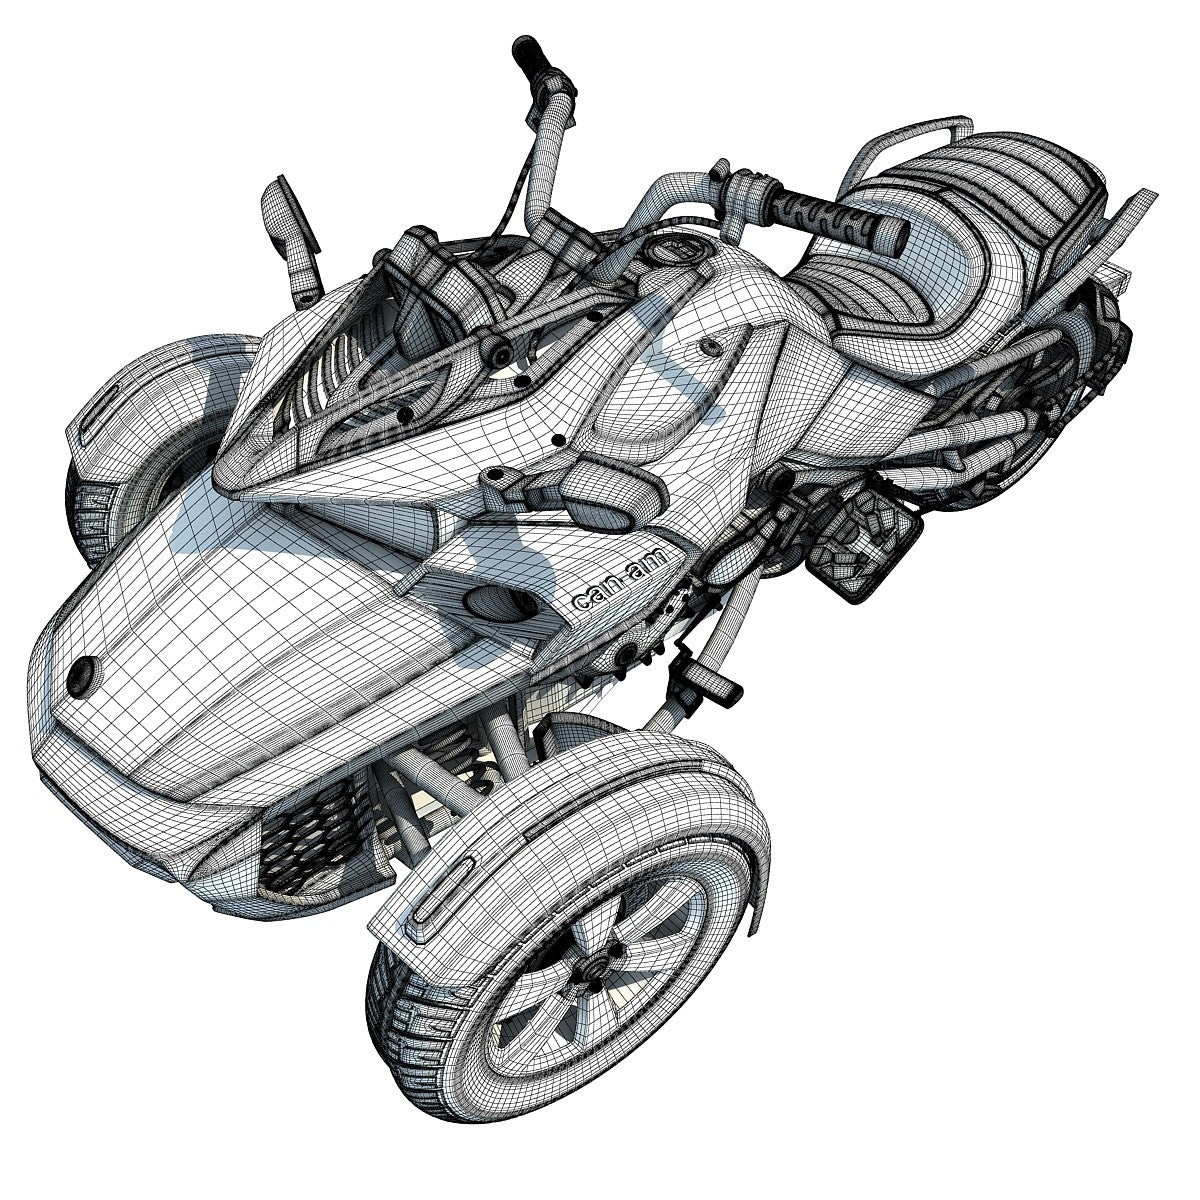 3D Motorcycle Models